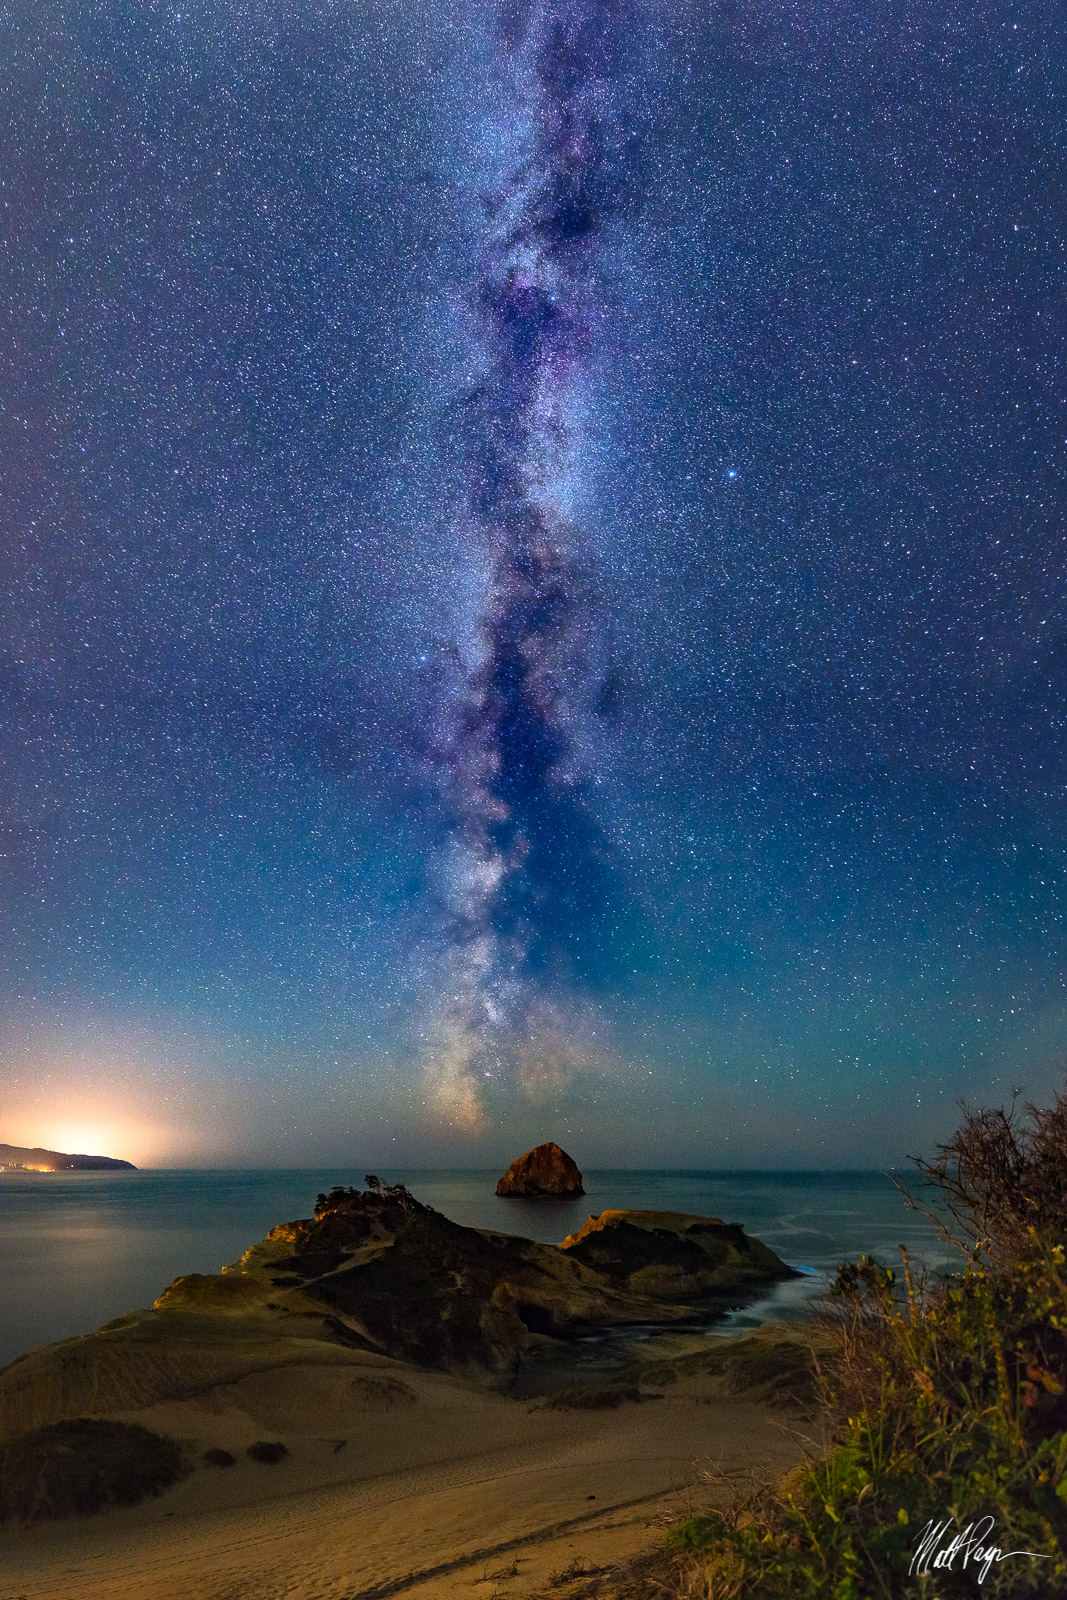 Cape Kiwanda, Coast, Darkness, Haystack Rock, Landscape, Lincoln City, Milky Way, Night, Nightscape, Ocean, Oregon, Pacific City, Pacific Northwest, Stars, bioluminescent algae, shore, stars, photo